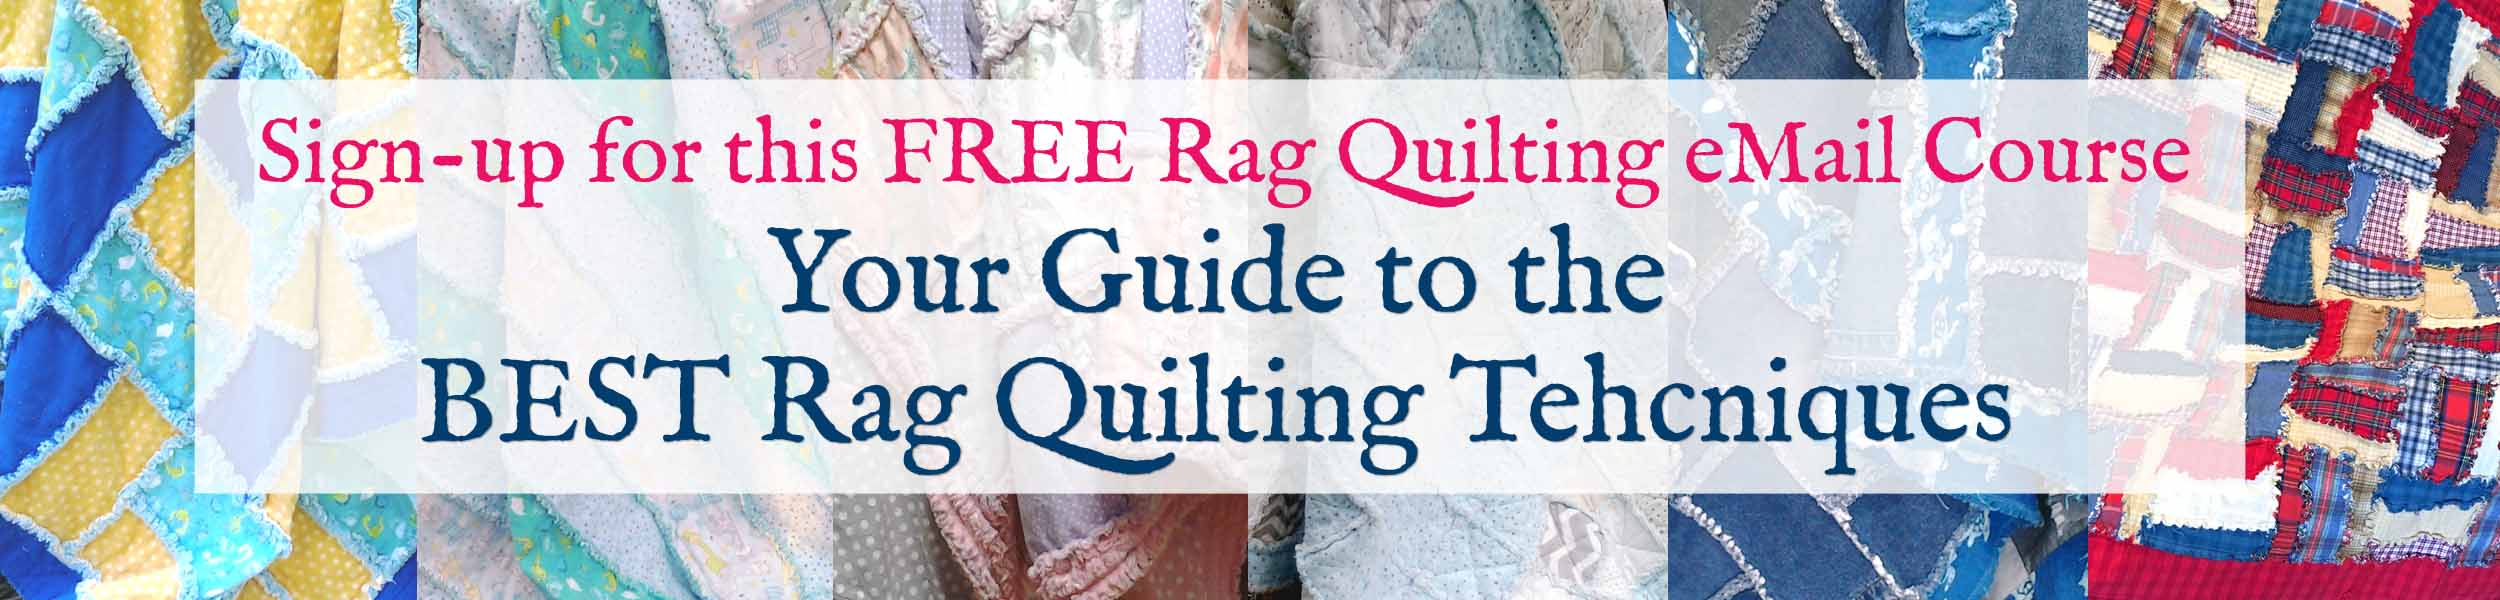 2500×600 Slider Rag Quilts x 6 wPromo for eCourse copy